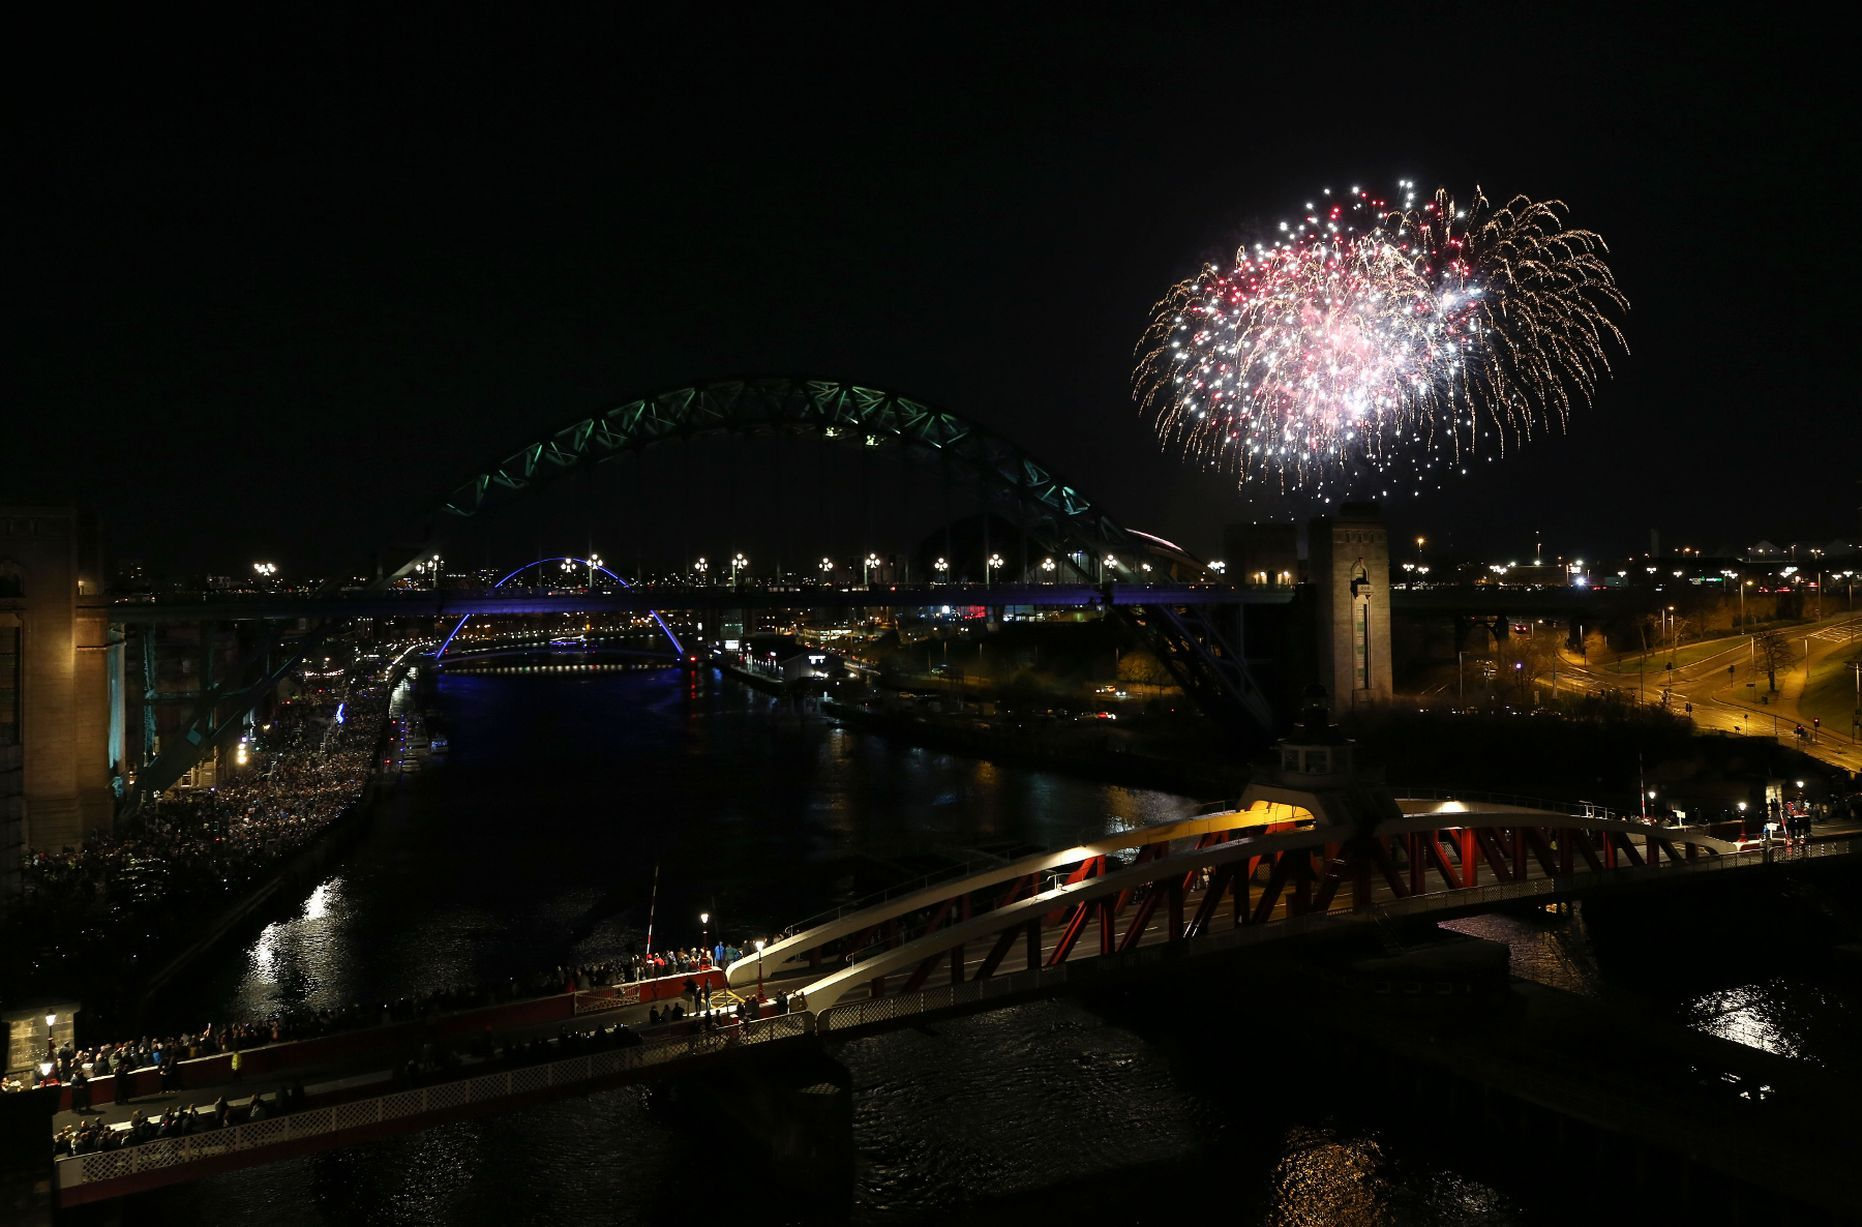 A firework display on Newcastle/Gatehead quayside to